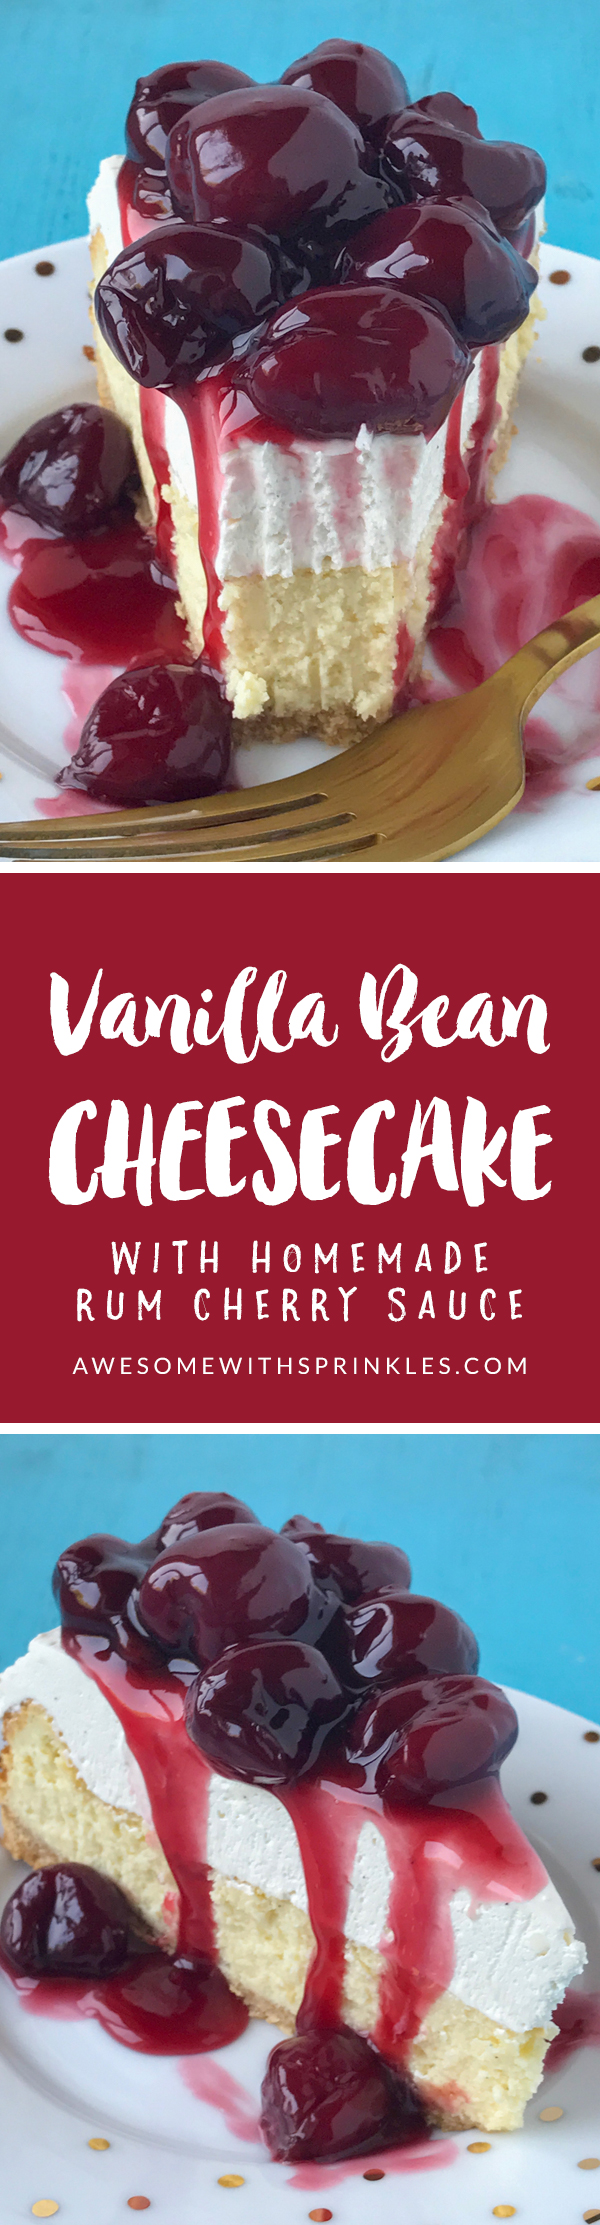 Vanilla bean cheesecake with homemade rum cherry sauce made with fresh whole cherries is the classic dessert! | Awesome with Sprinkles